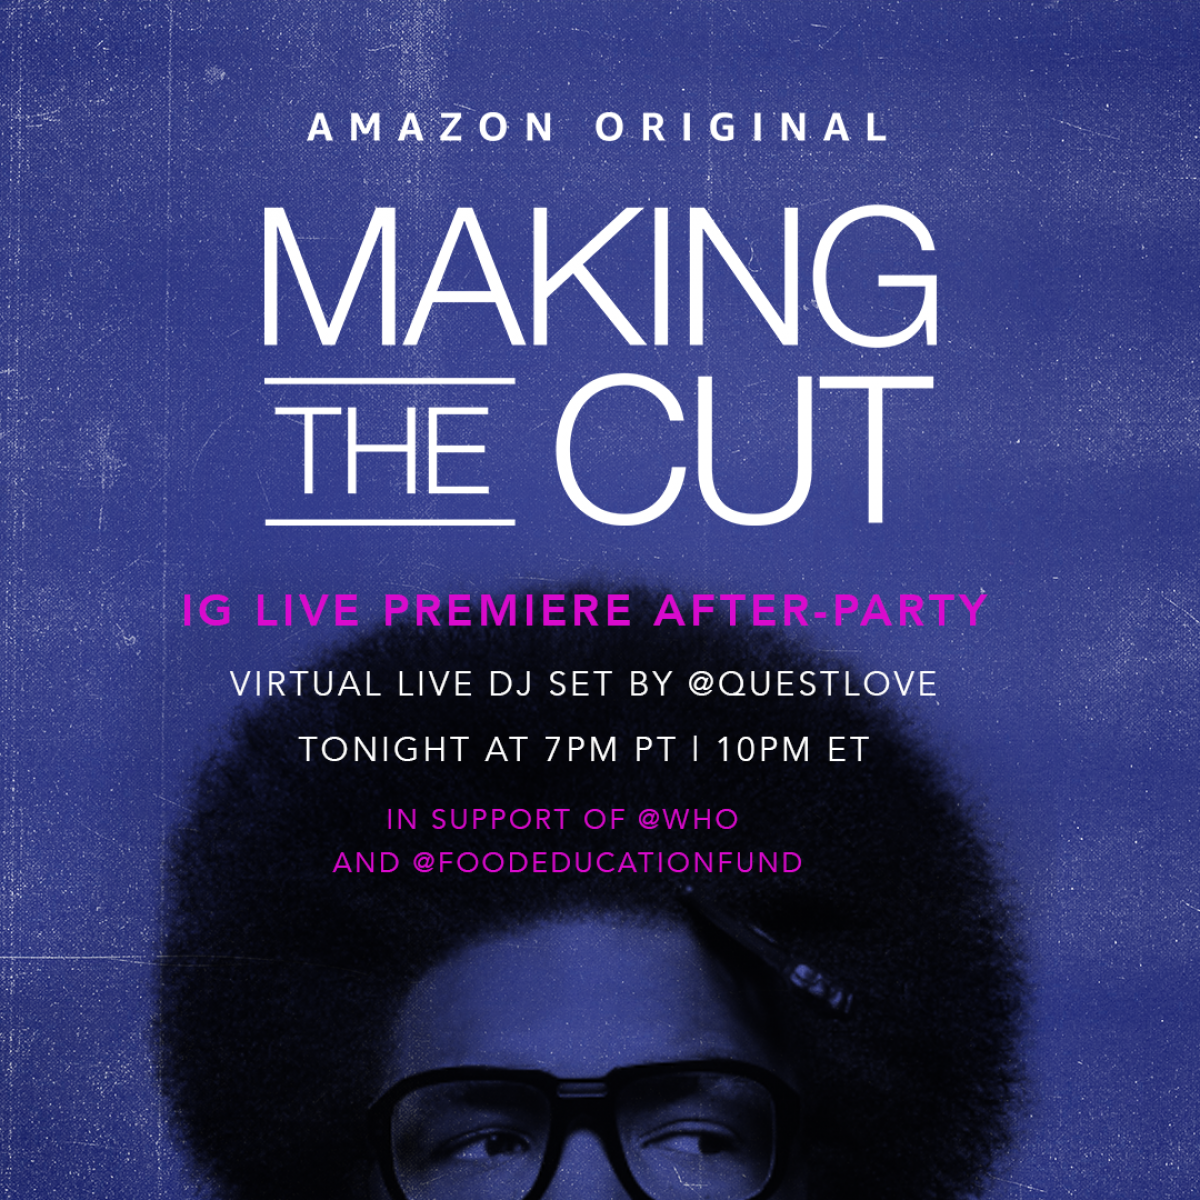 Naomi Campbell And Questlove Team Up For 'Making The Cut' Watch Party